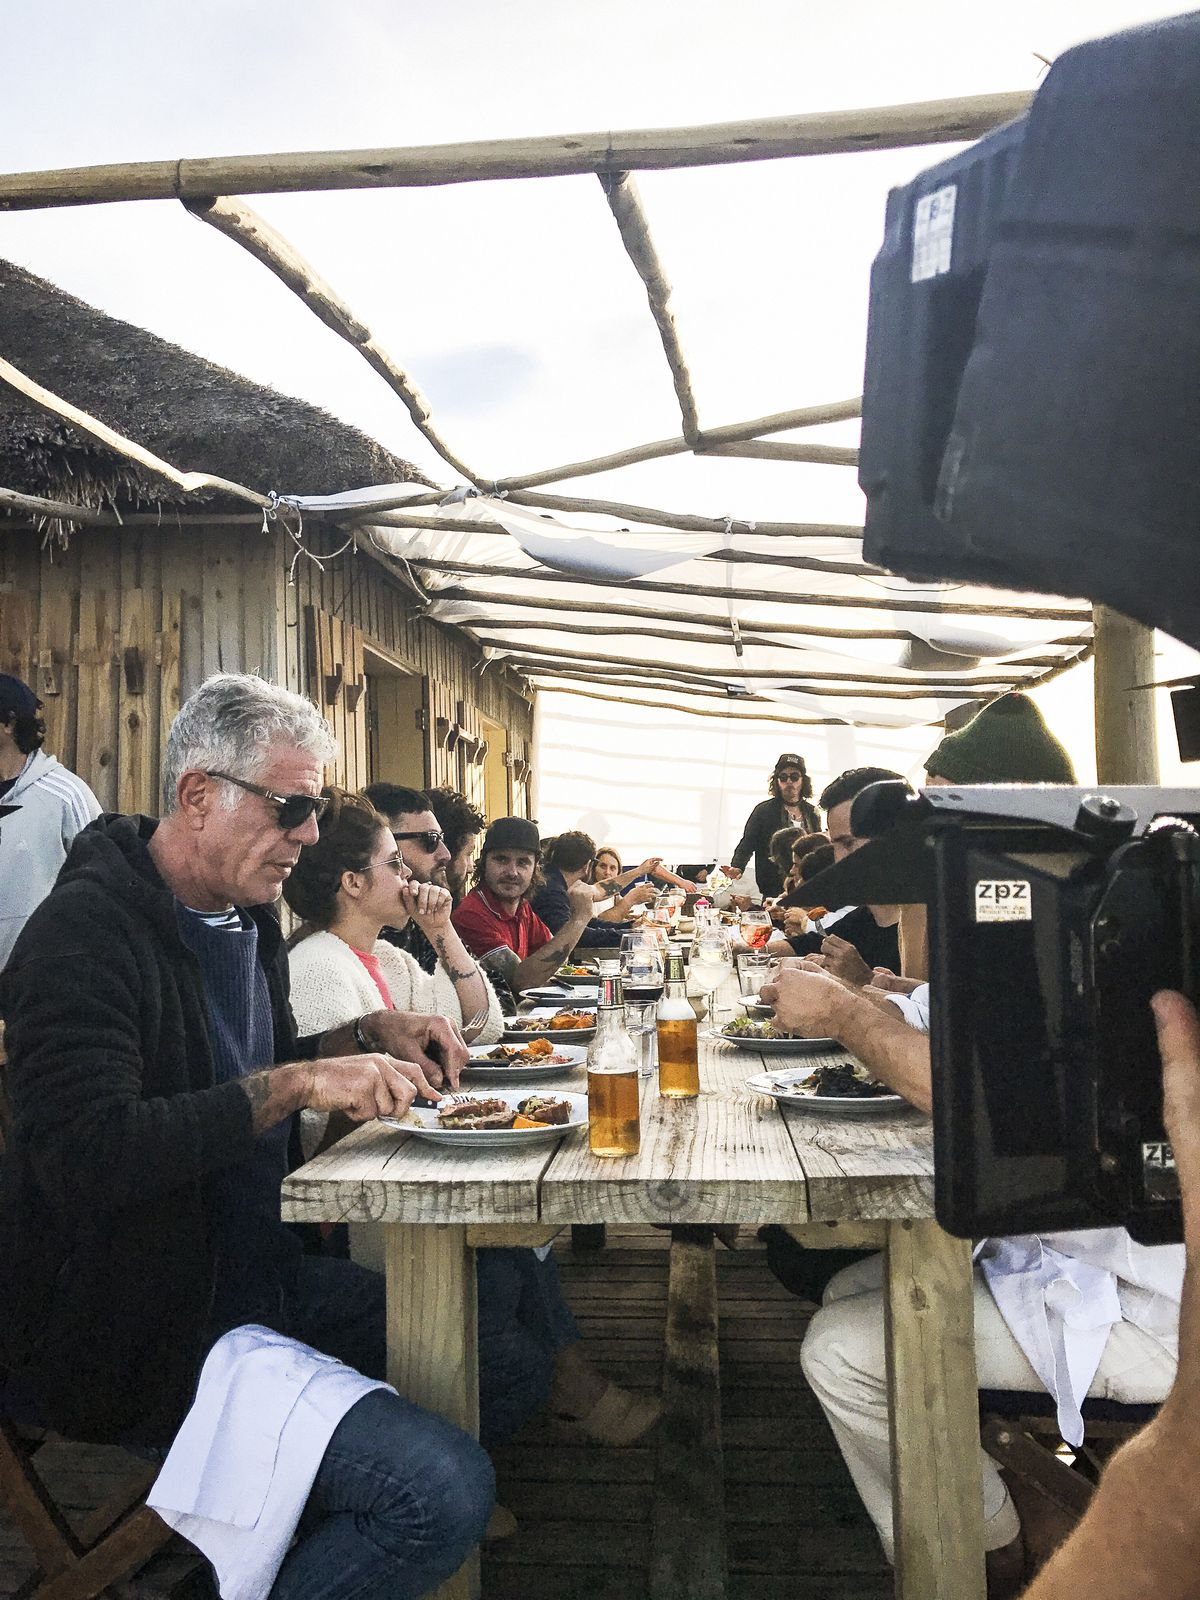 Anthony Bourdain dining at a communal table during this week's episode of Parts Unknown